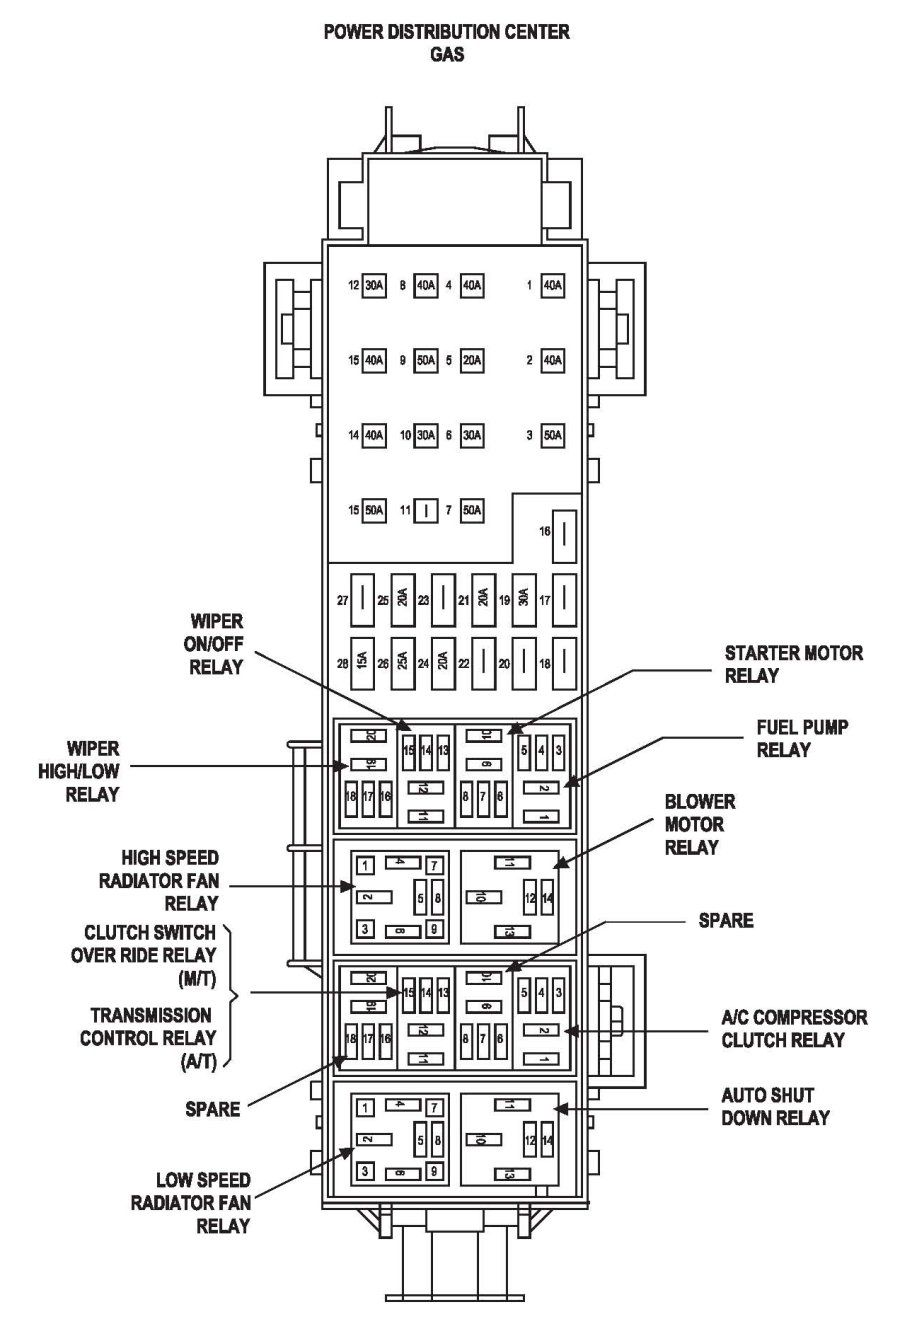 1994 jeep sahara power distribution center fuse box diagram